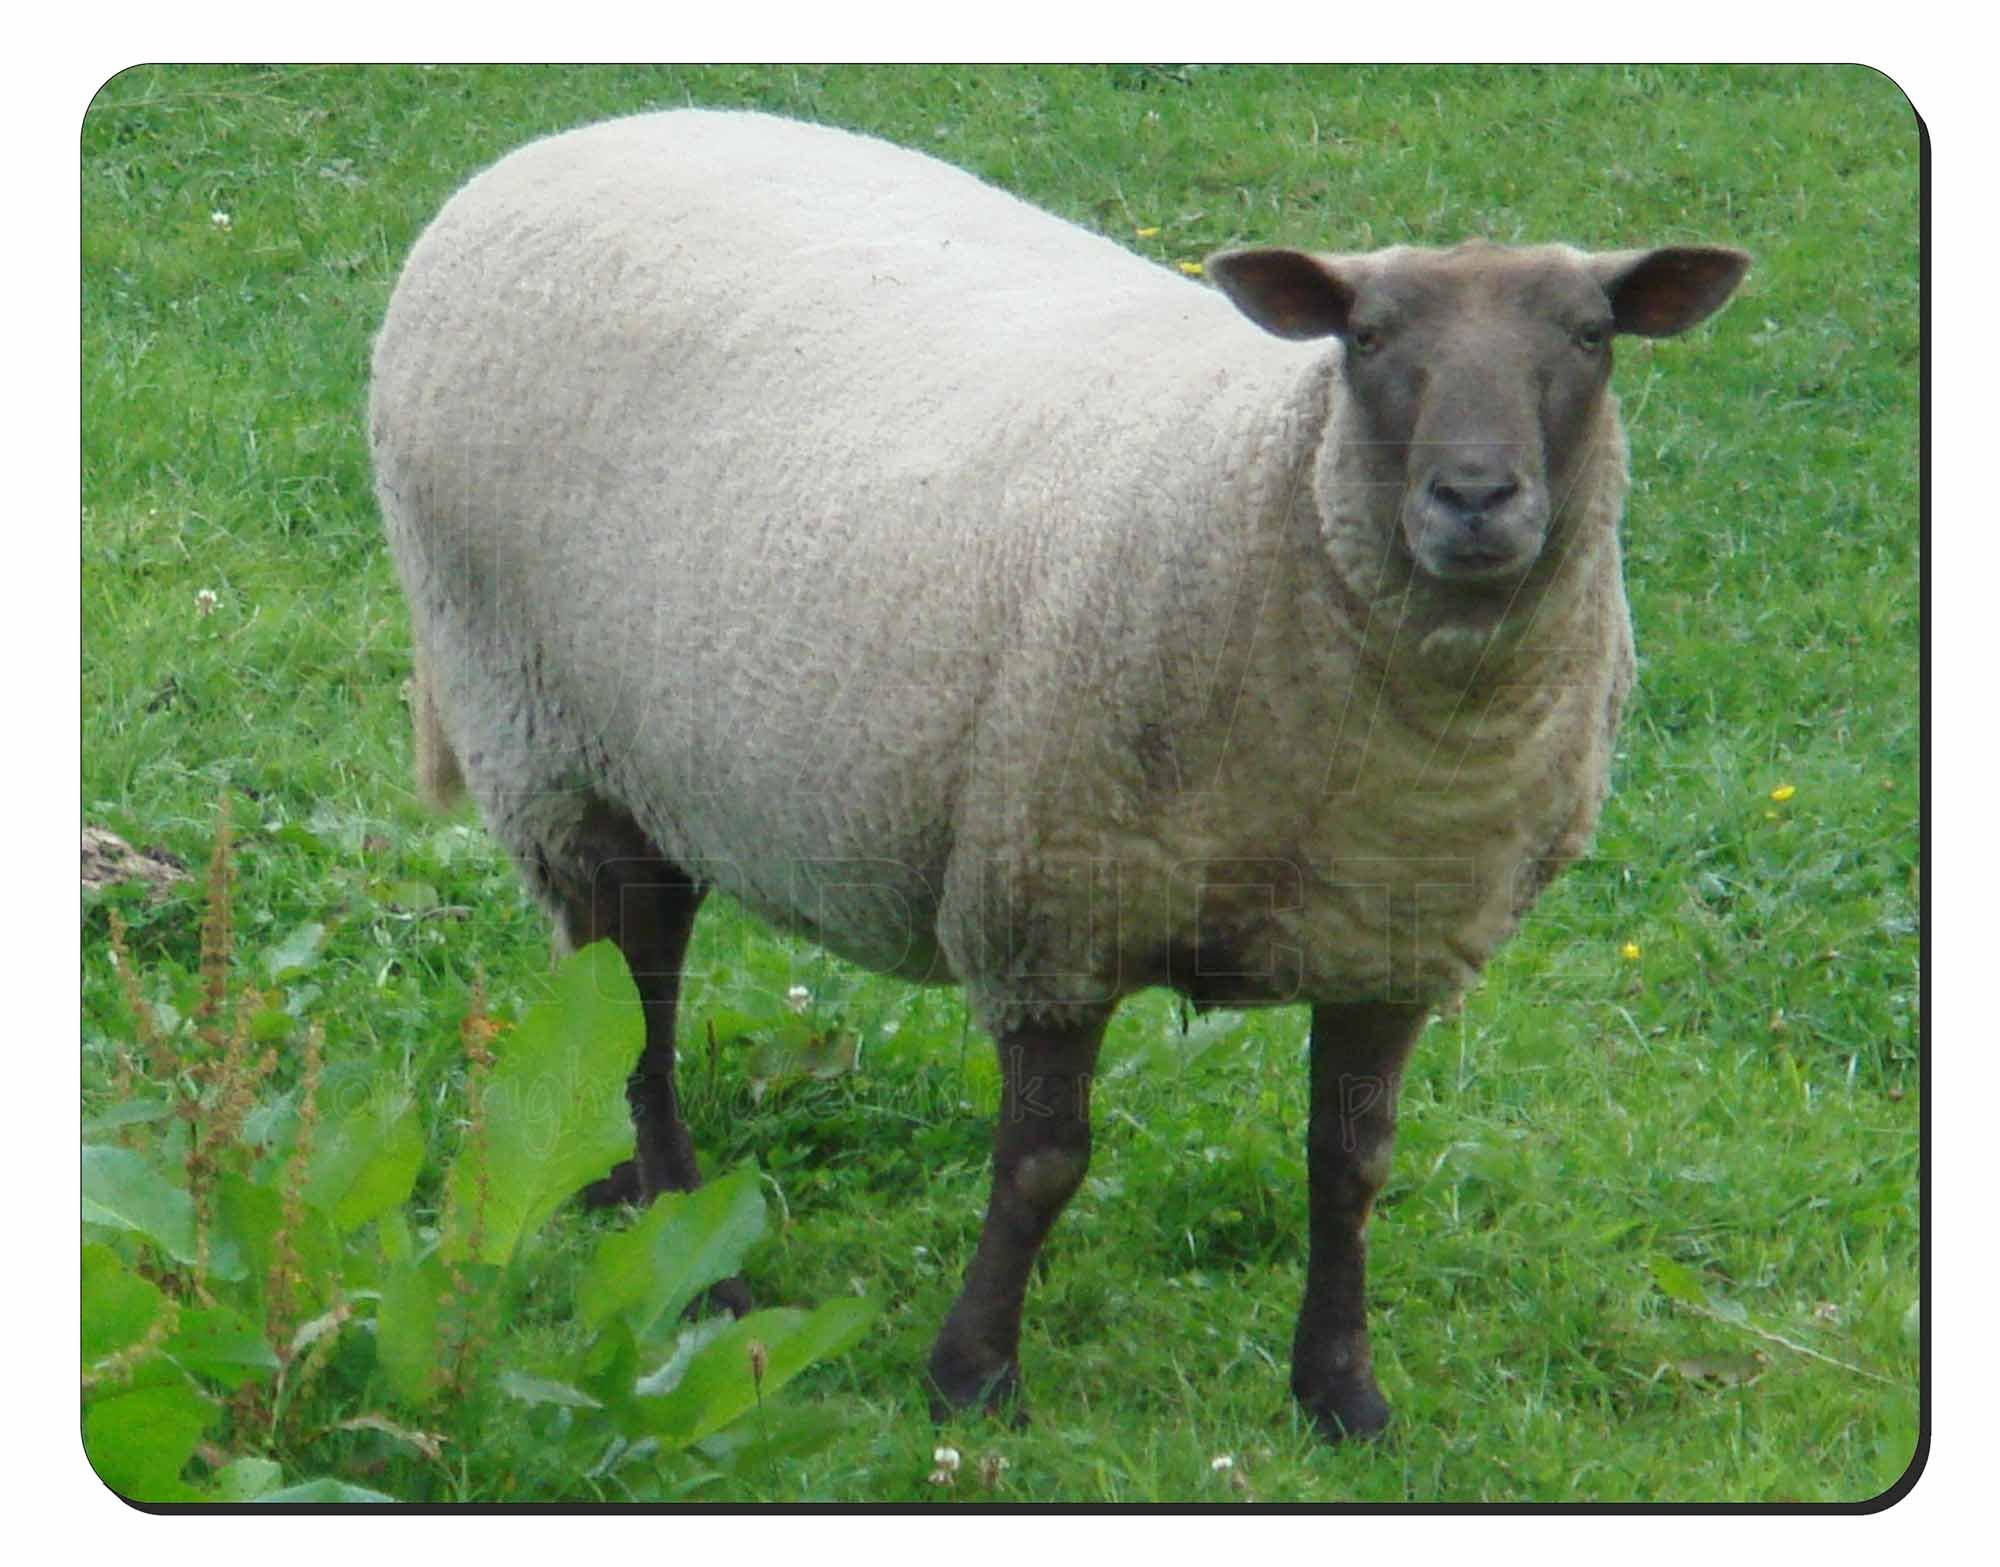 Sheep Intrigued by Camera Computer Mouse Mat/ Pad